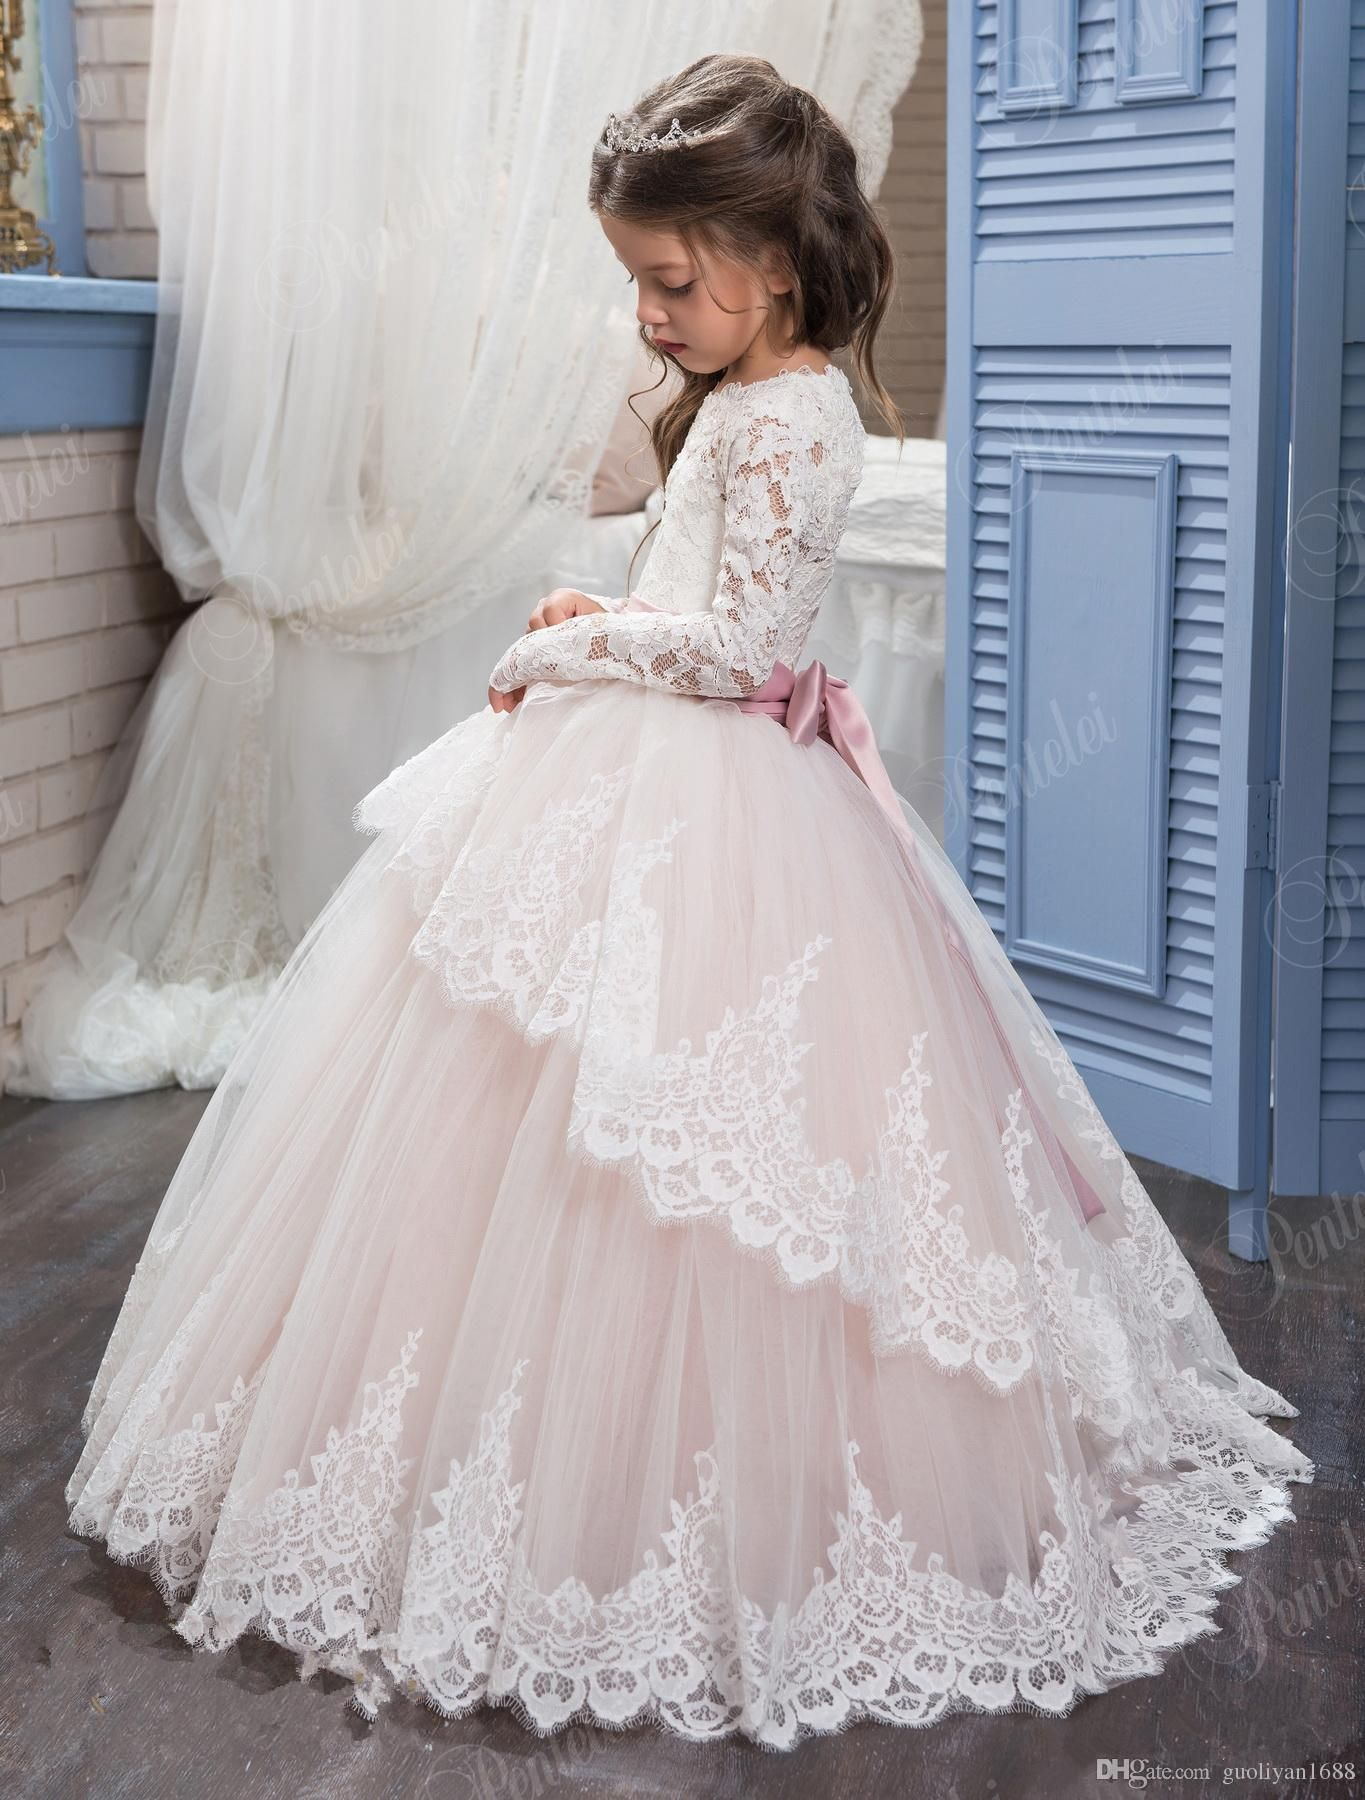 882796c7b05 2018 Lace Flower Girl Dresses for Weddings Blush Pink Long Sleeves Ball Gown  Princess First Communion Dress Child Party Formal Wear Gowns